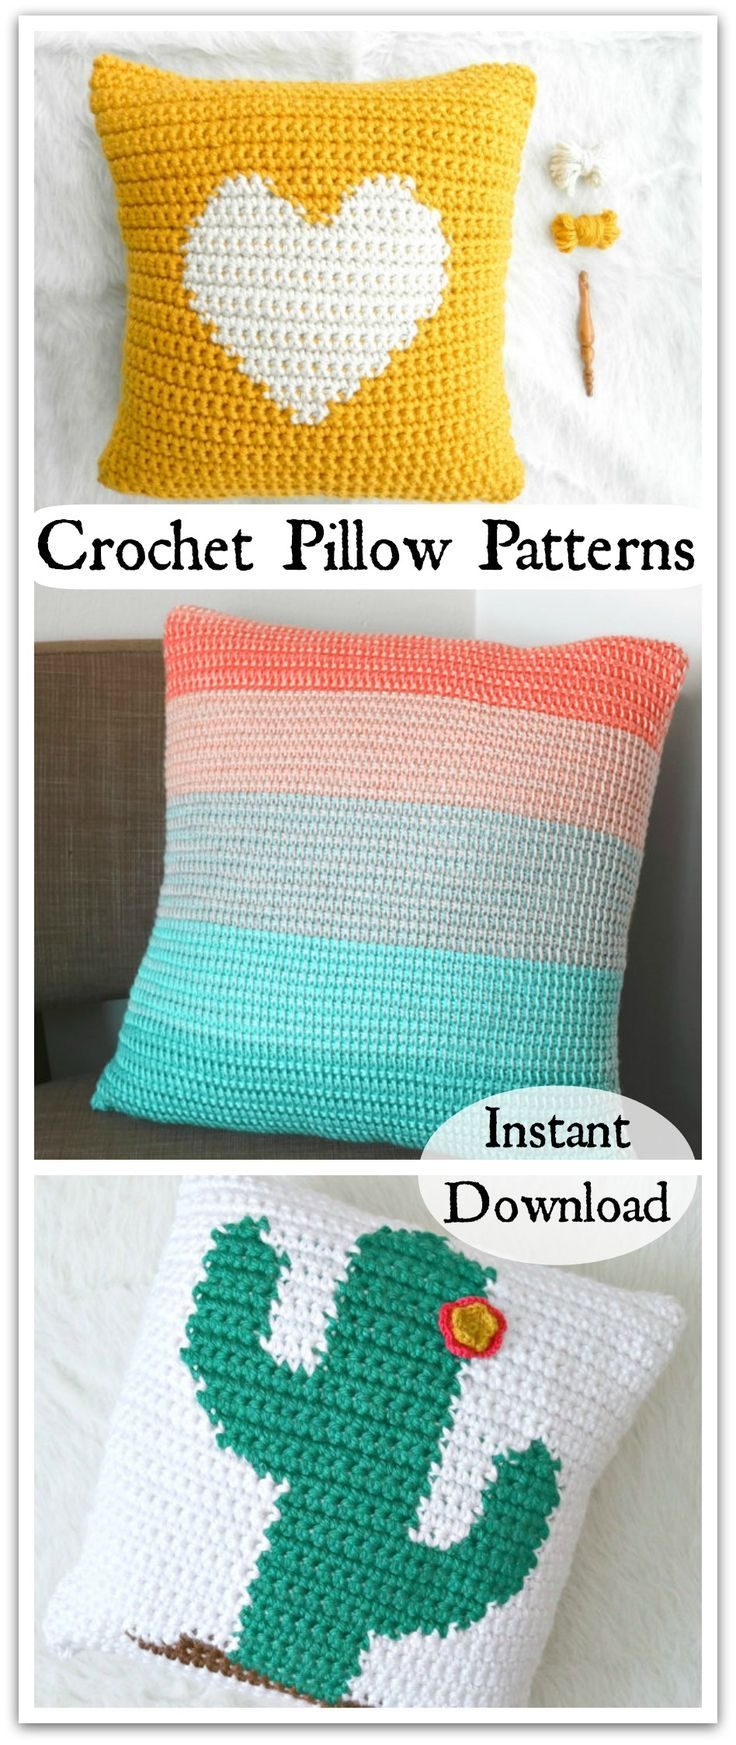 Snuggle Up to modern crochet accessories, patterns, and maker gifts ...